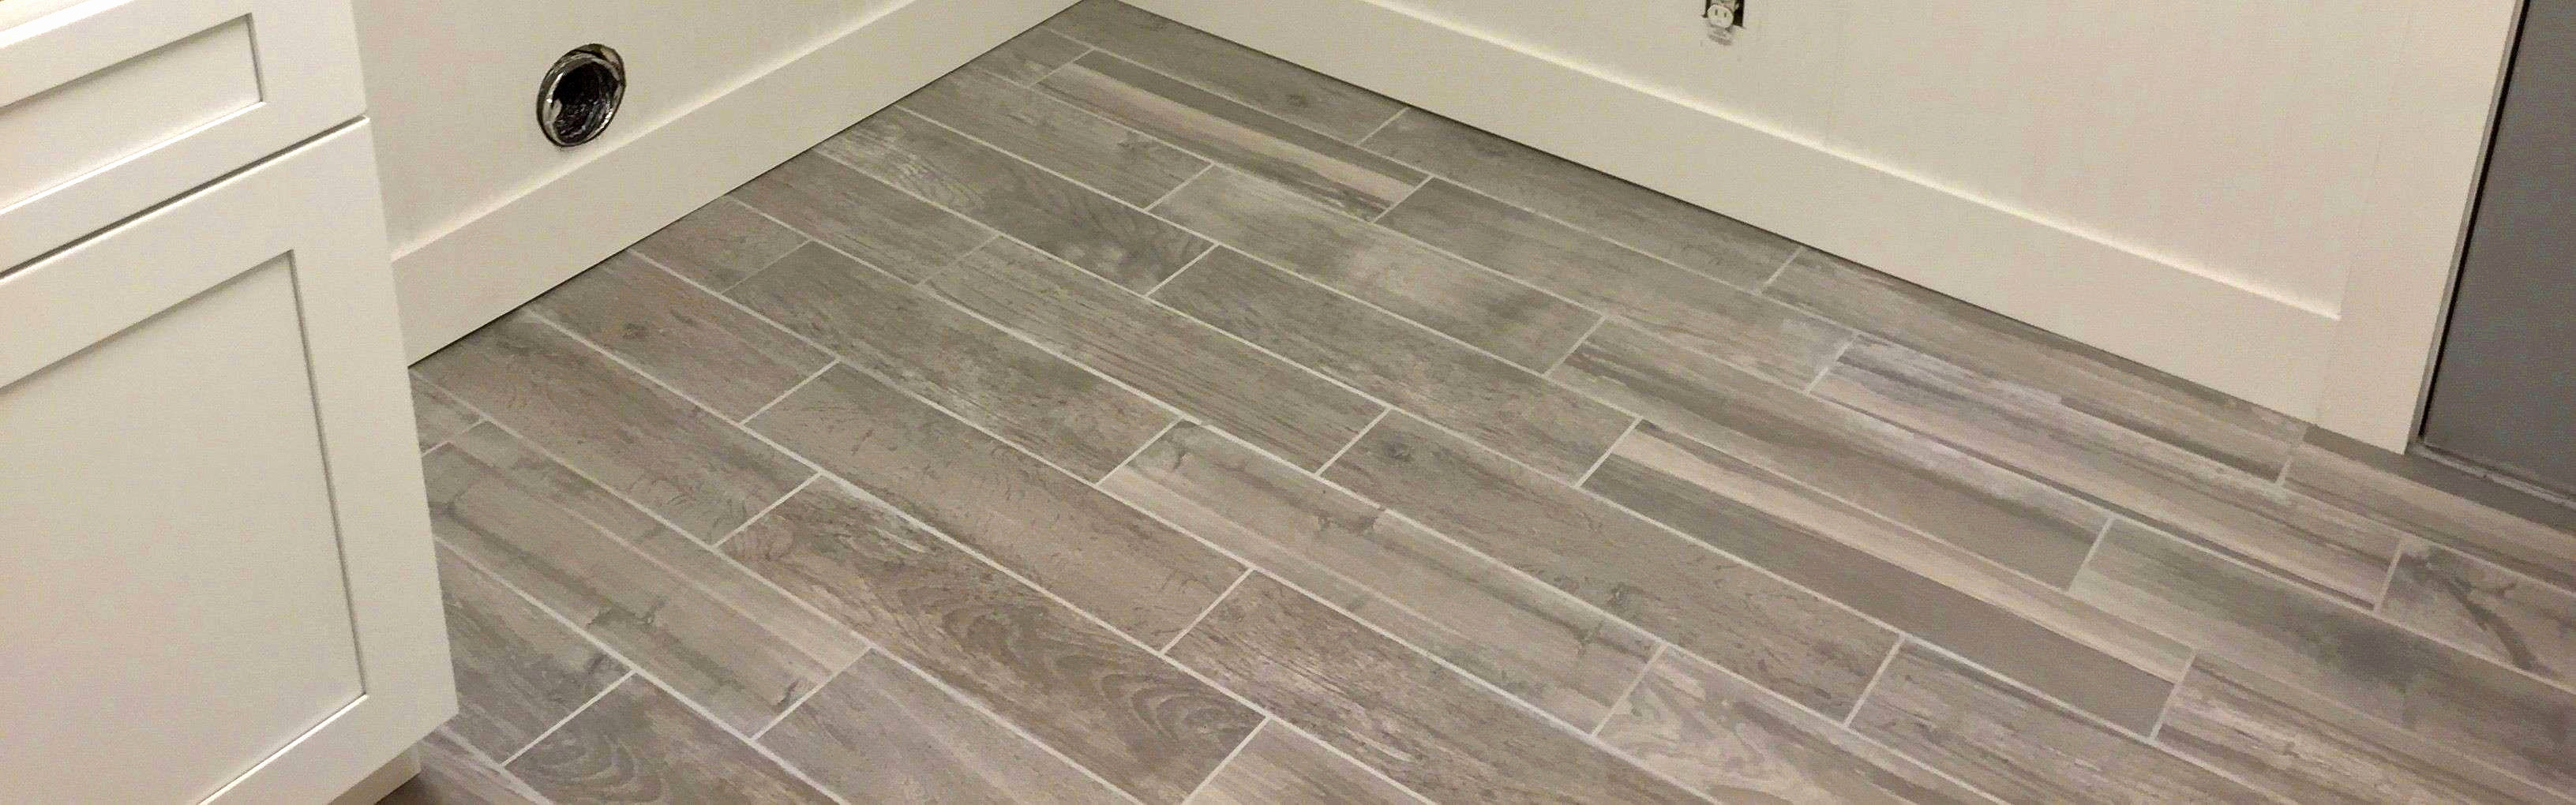 hardwood flooring vs laminate flooring cost of wood floor installation cost floor plan ideas with regard to unique bathroom tiling ideas best h sink install bathroom i 0d exciting beautiful fresh bathroom floor hardwood flooring cost